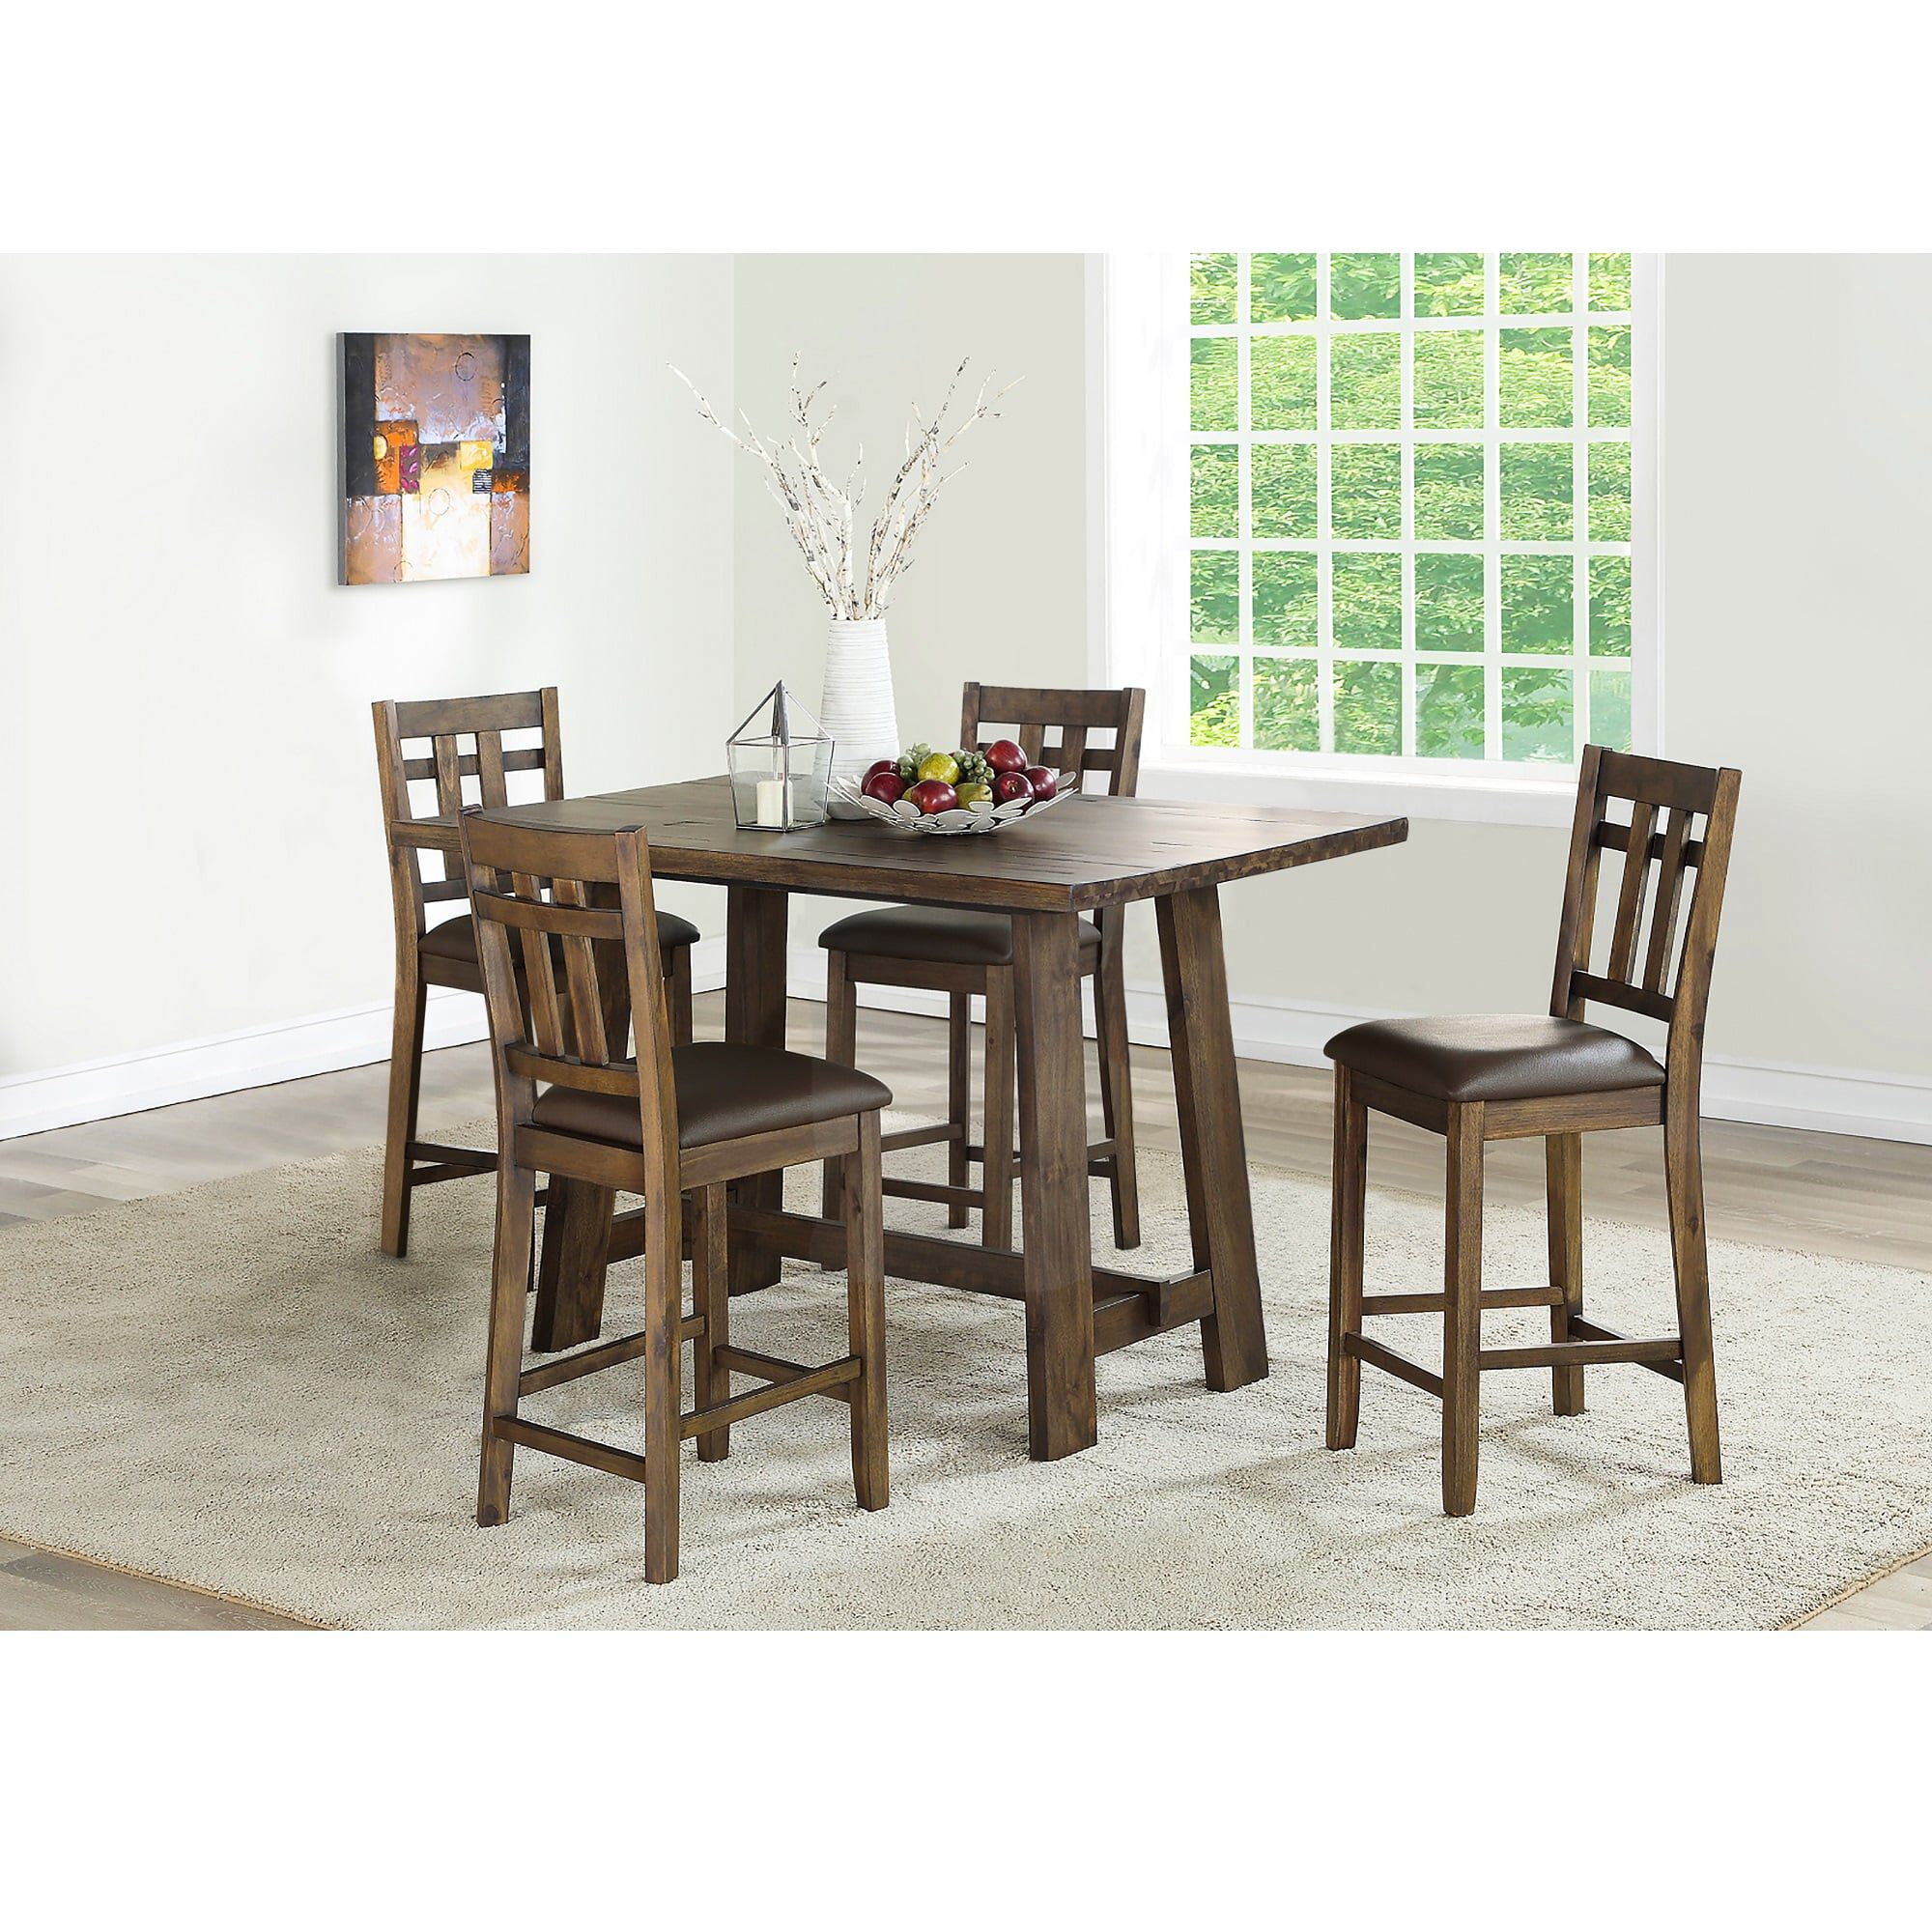 5 Piece Saranac Counter Height Dining Room Collection